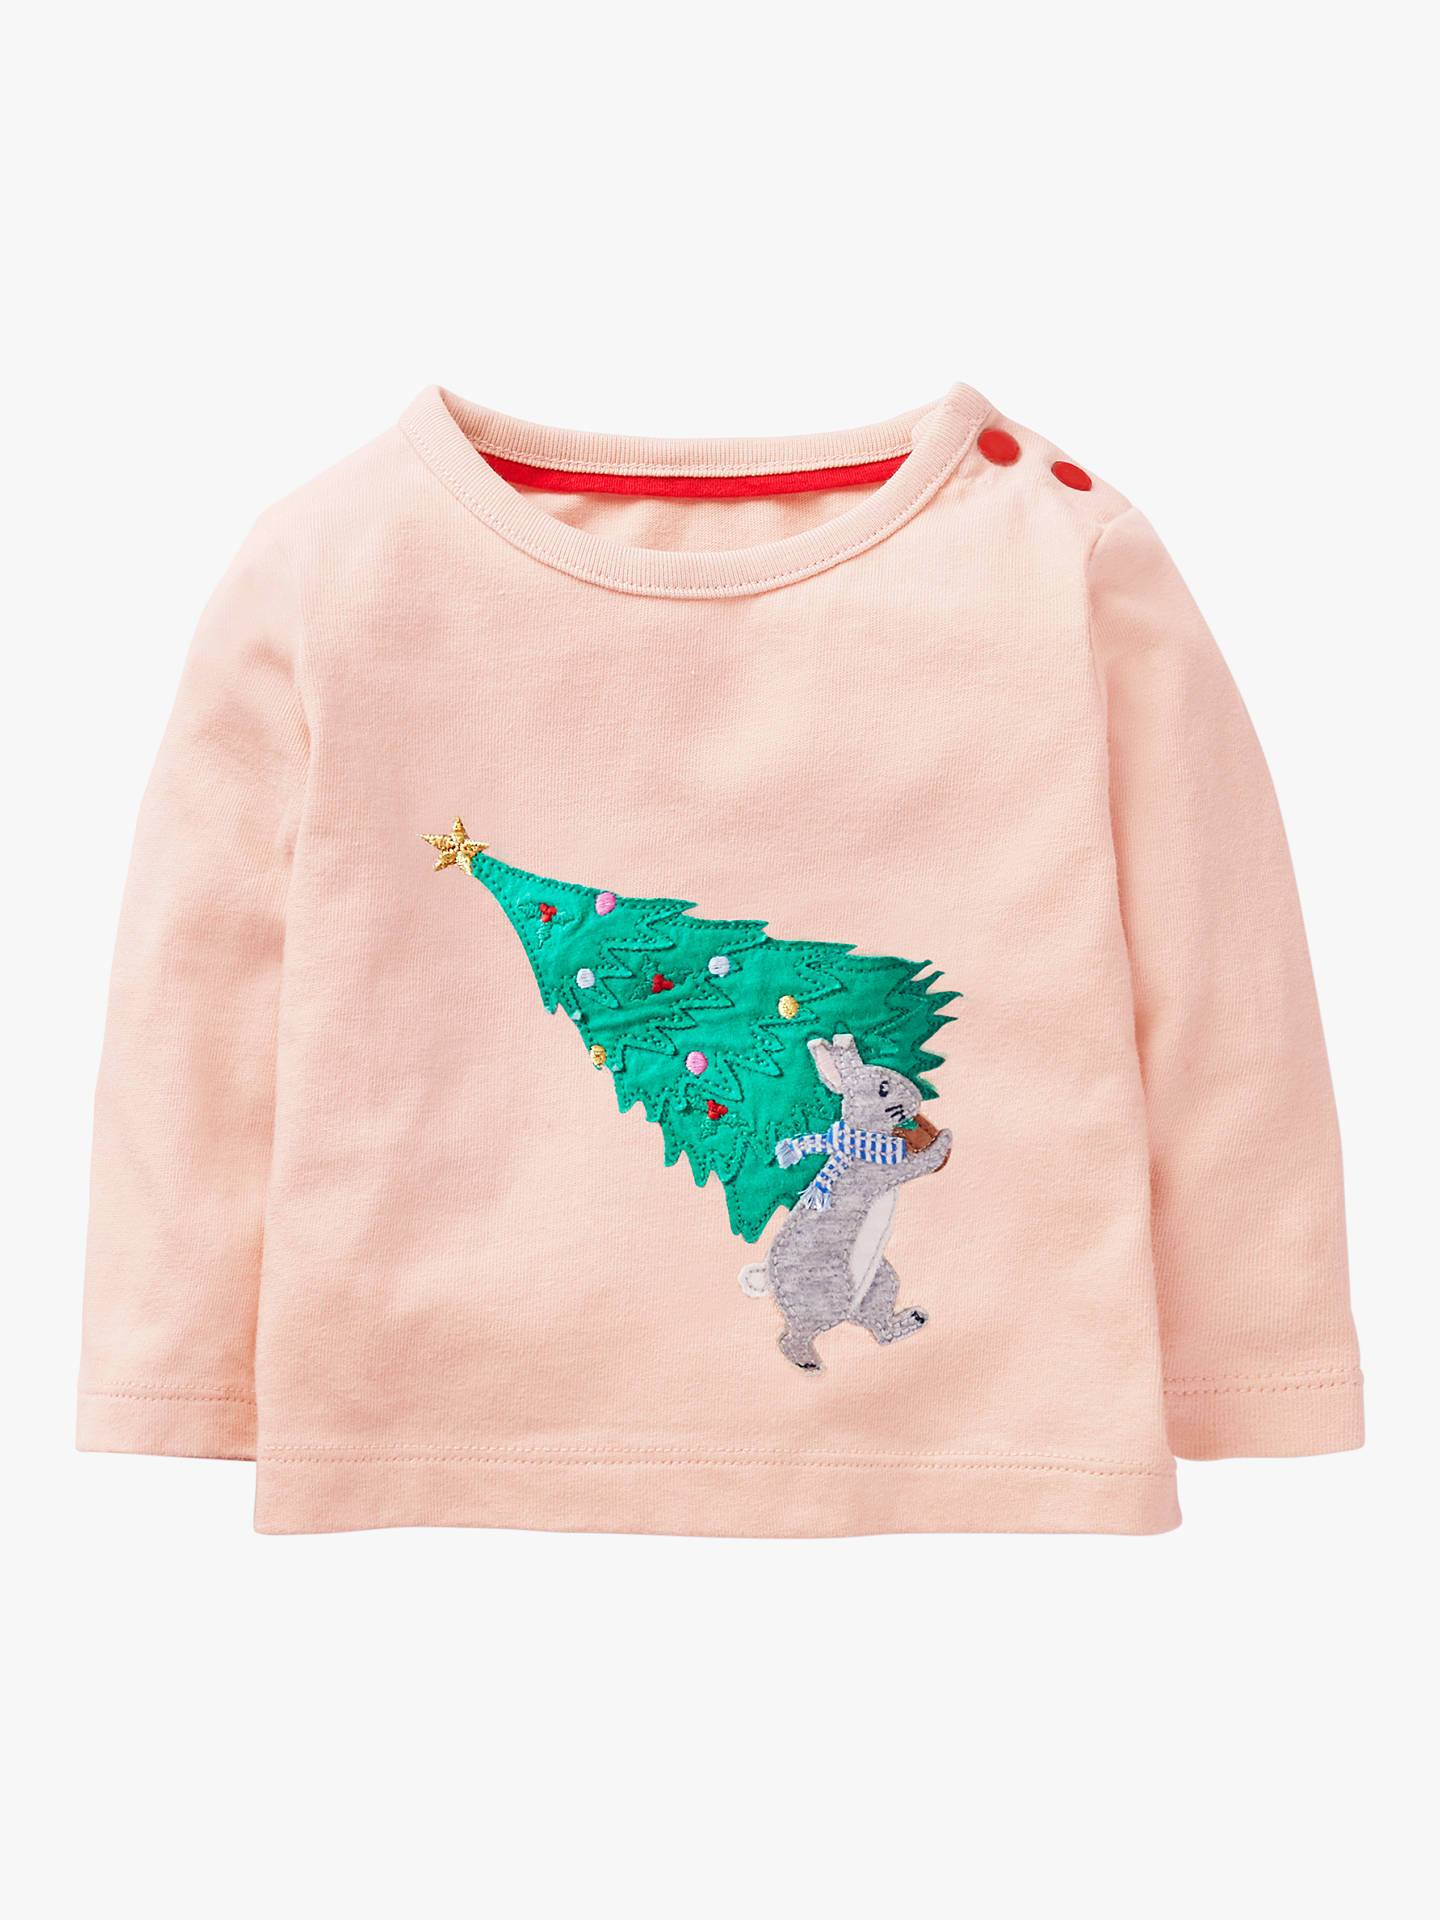 205dff9a3cfee Buy Mini Boden Baby Festive Christmas Tree Appliqué T-Shirt, Provence Dusty  Pink, ...